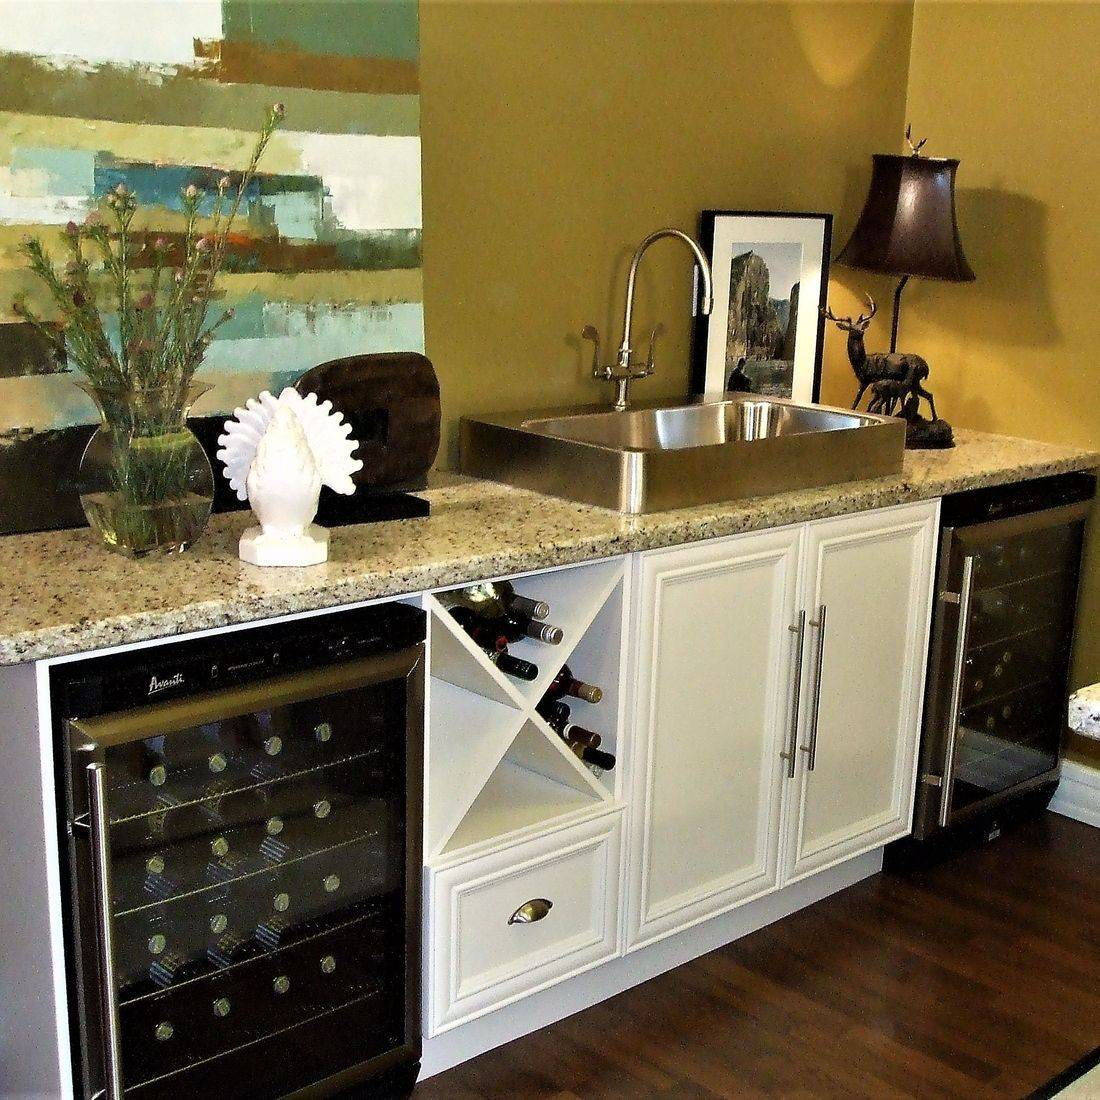 Sibra Kitchens Markham Toronto cabinets basement bar HGTV